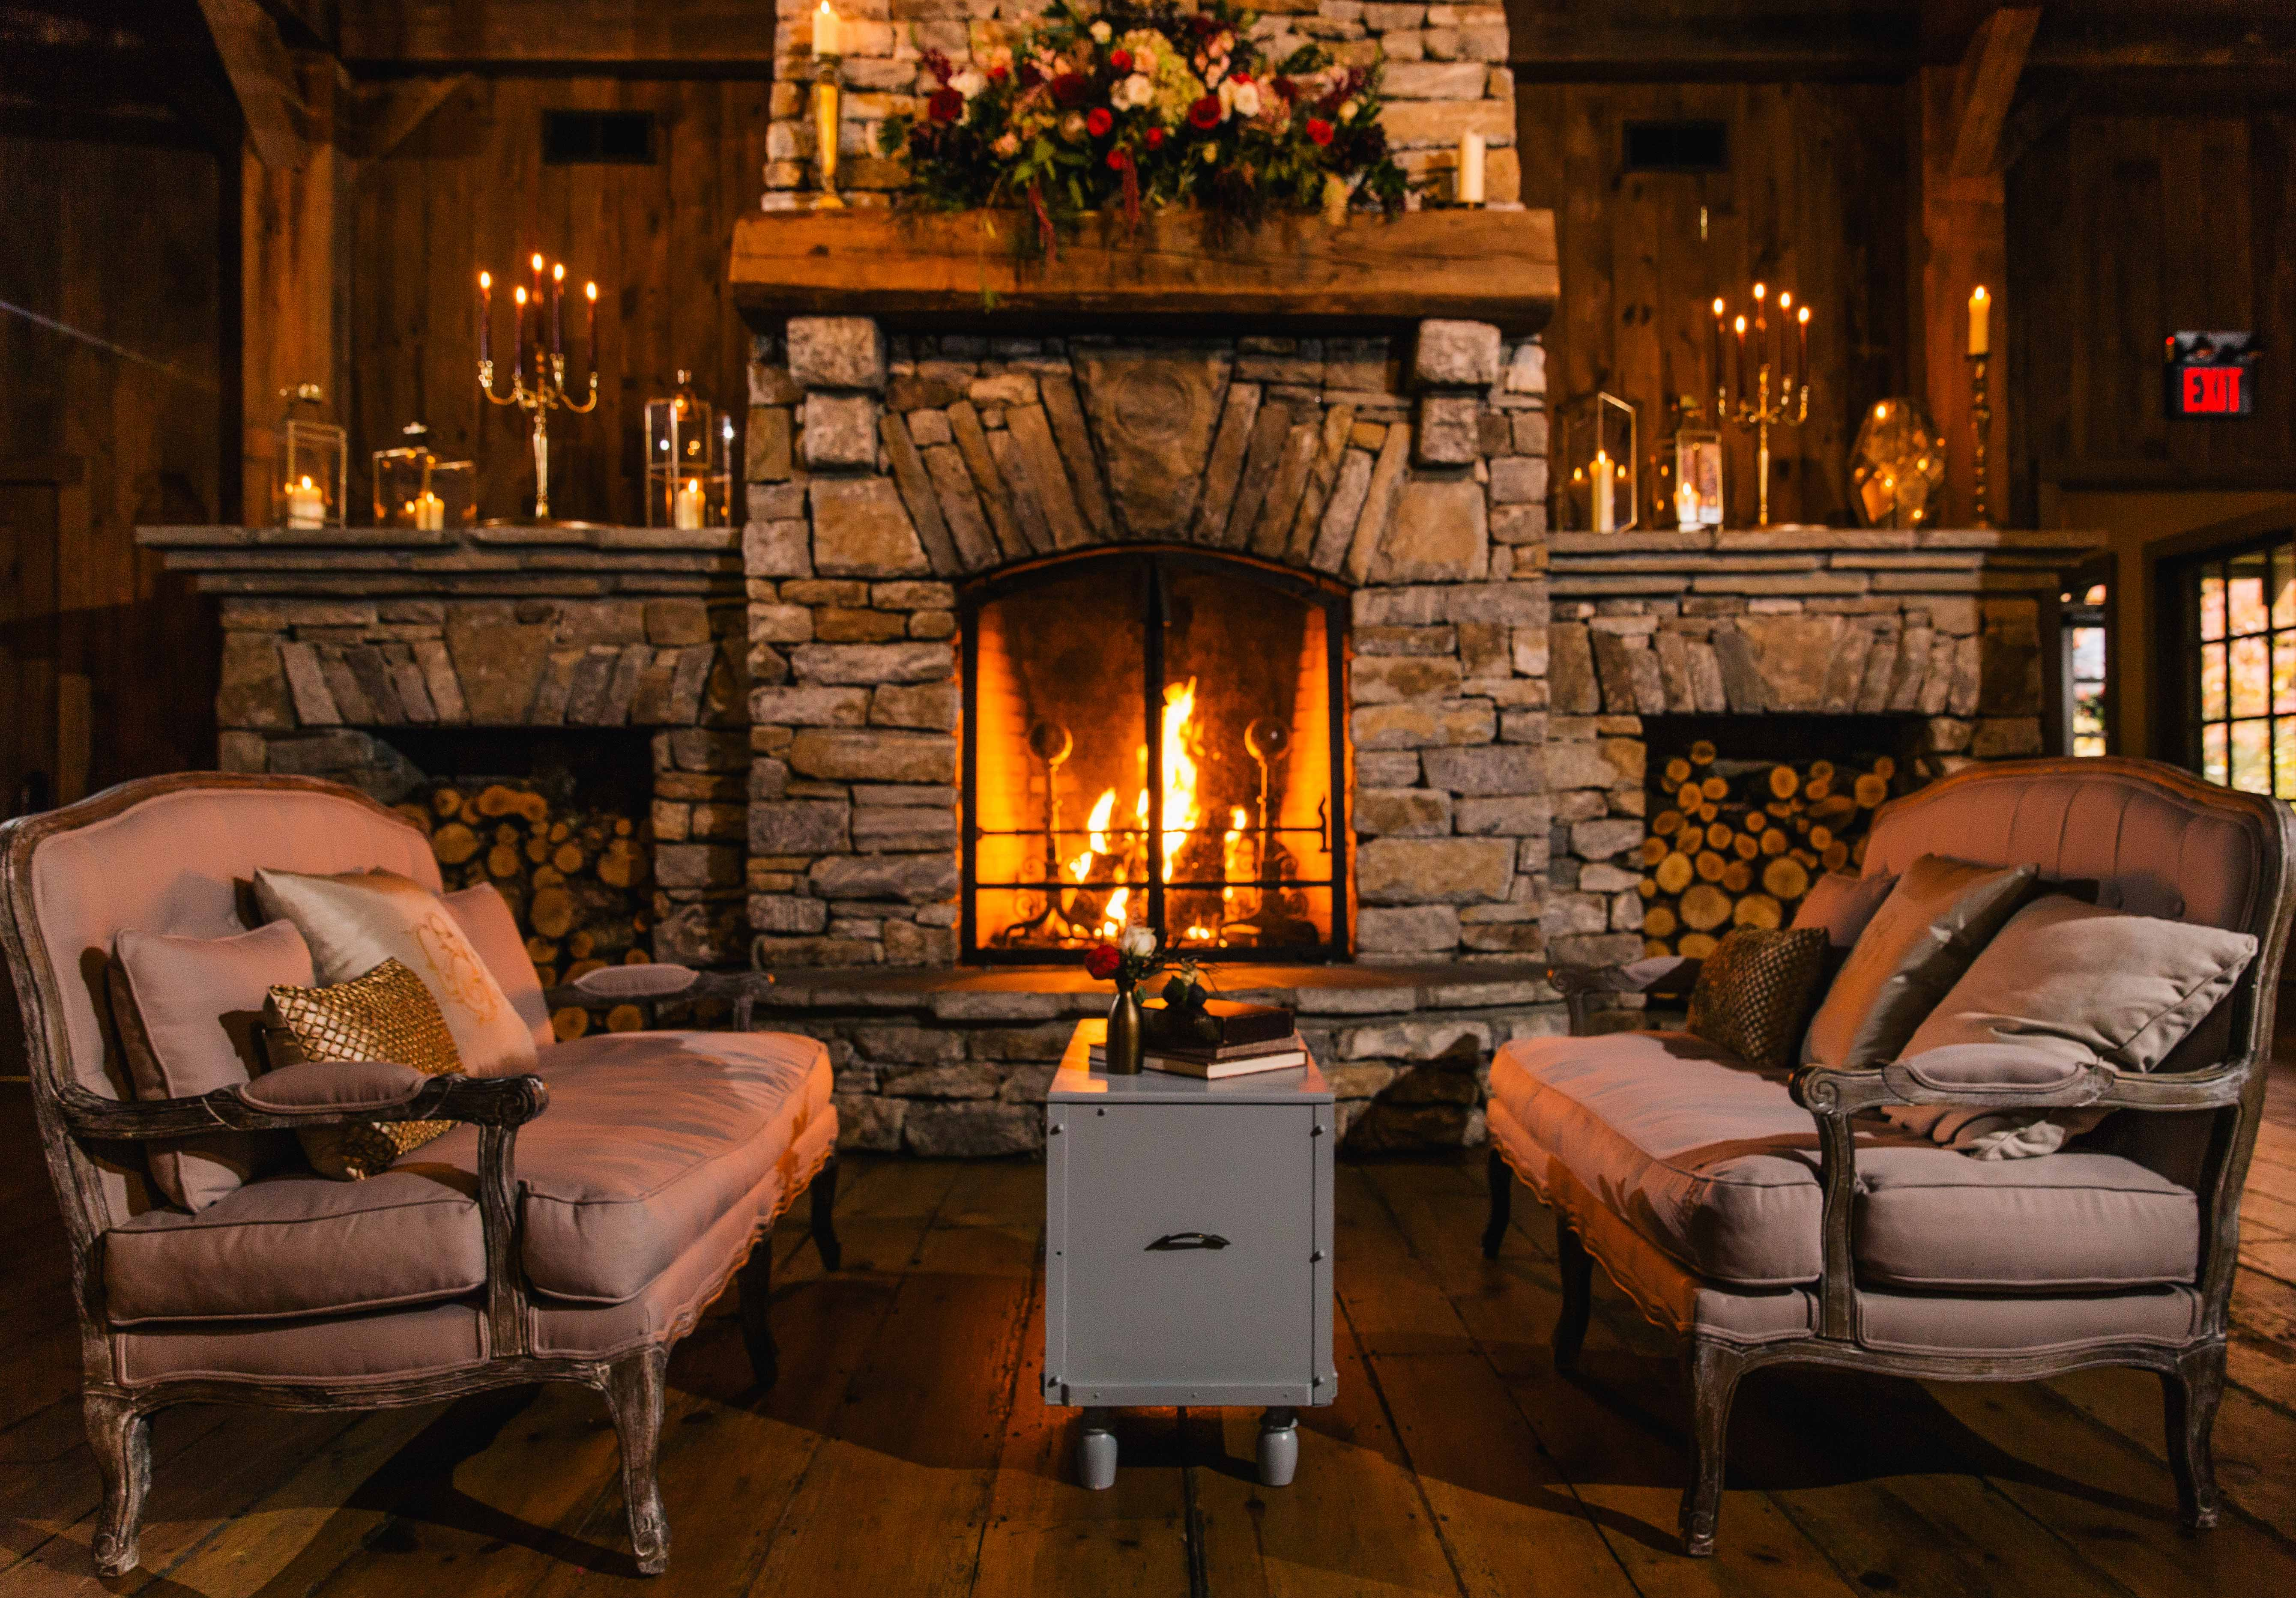 Fall wedding ideas venue with fireplace and lounge area